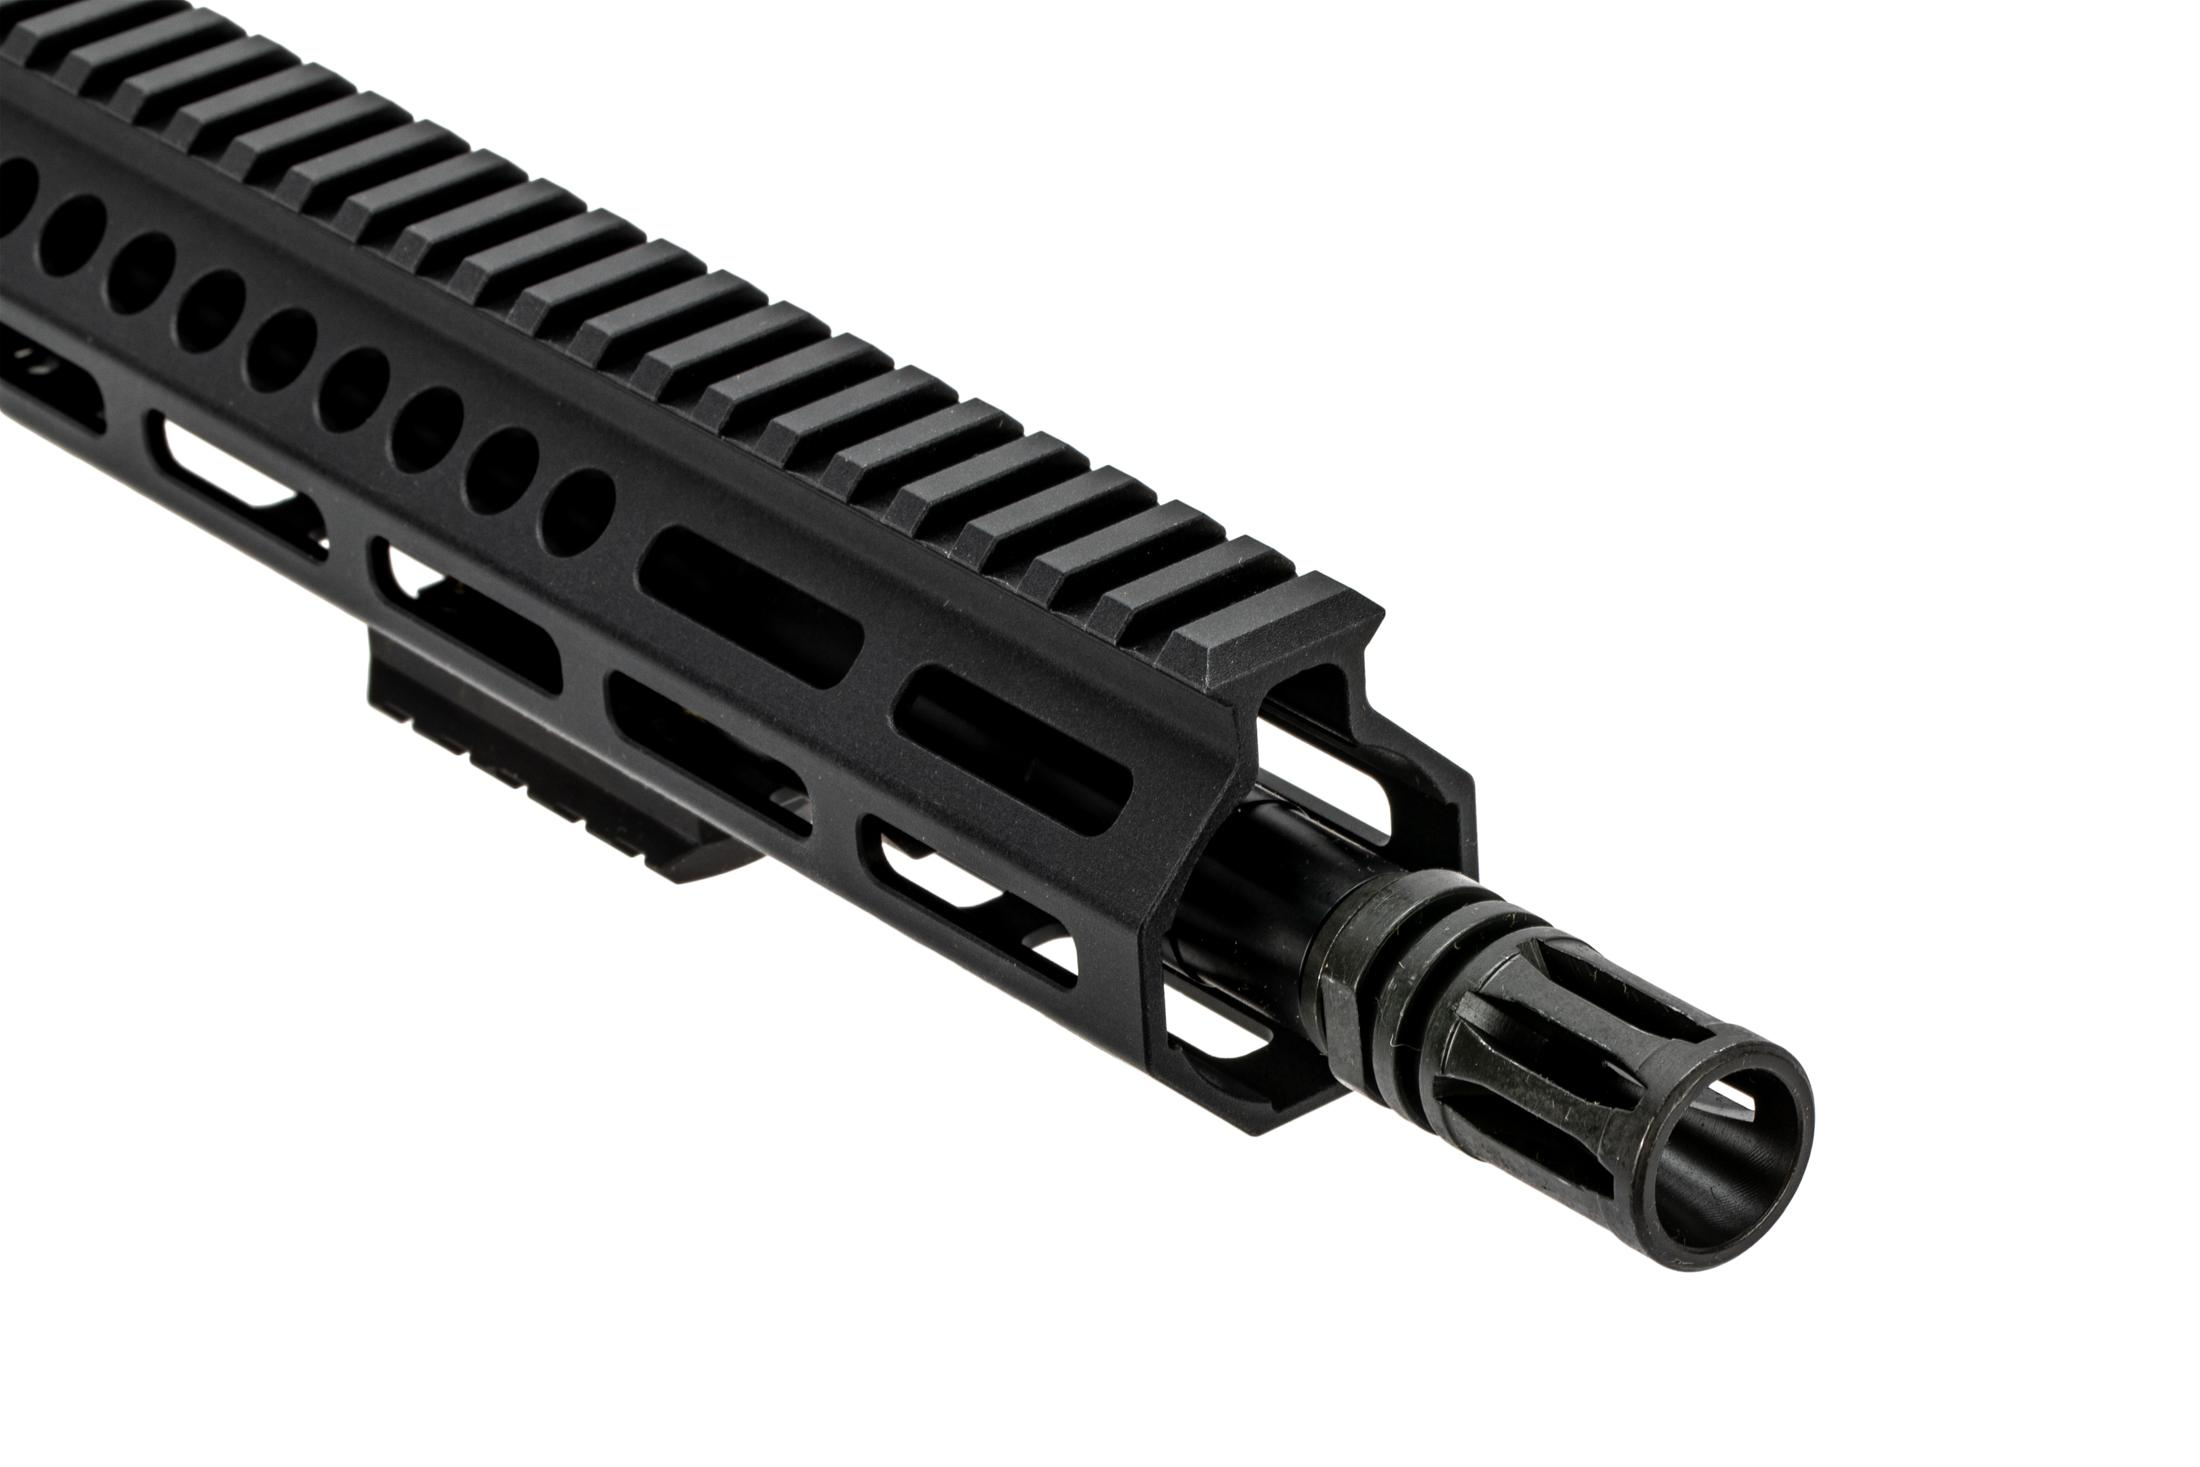 Sons of Liberty Gun Works M4-EXO2 barreled upper with 11.5 AR barrel and A2 flash hider